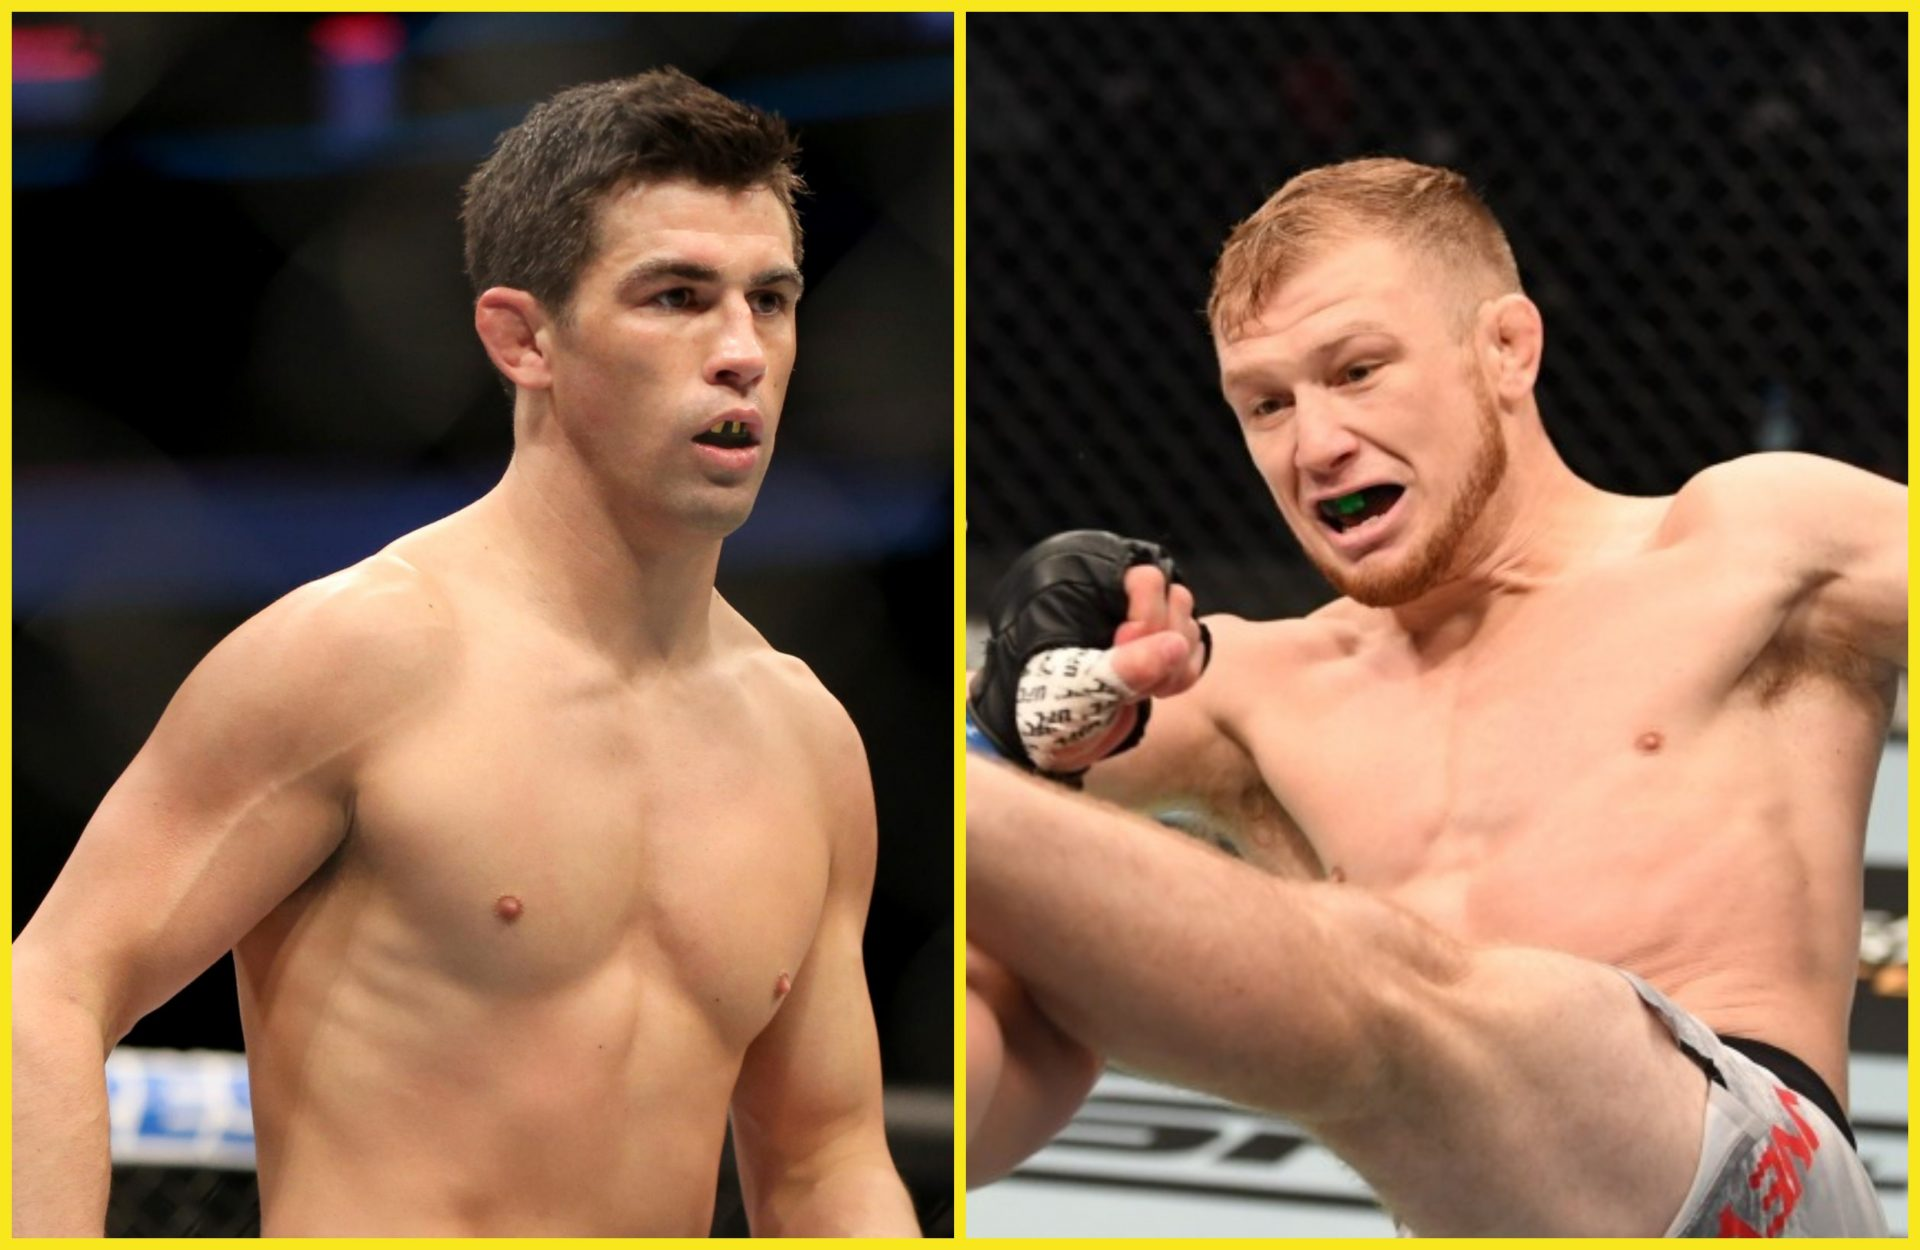 Casey Kenney expects to finish Dominick Cruz at UFC 259 - Casey Kenney